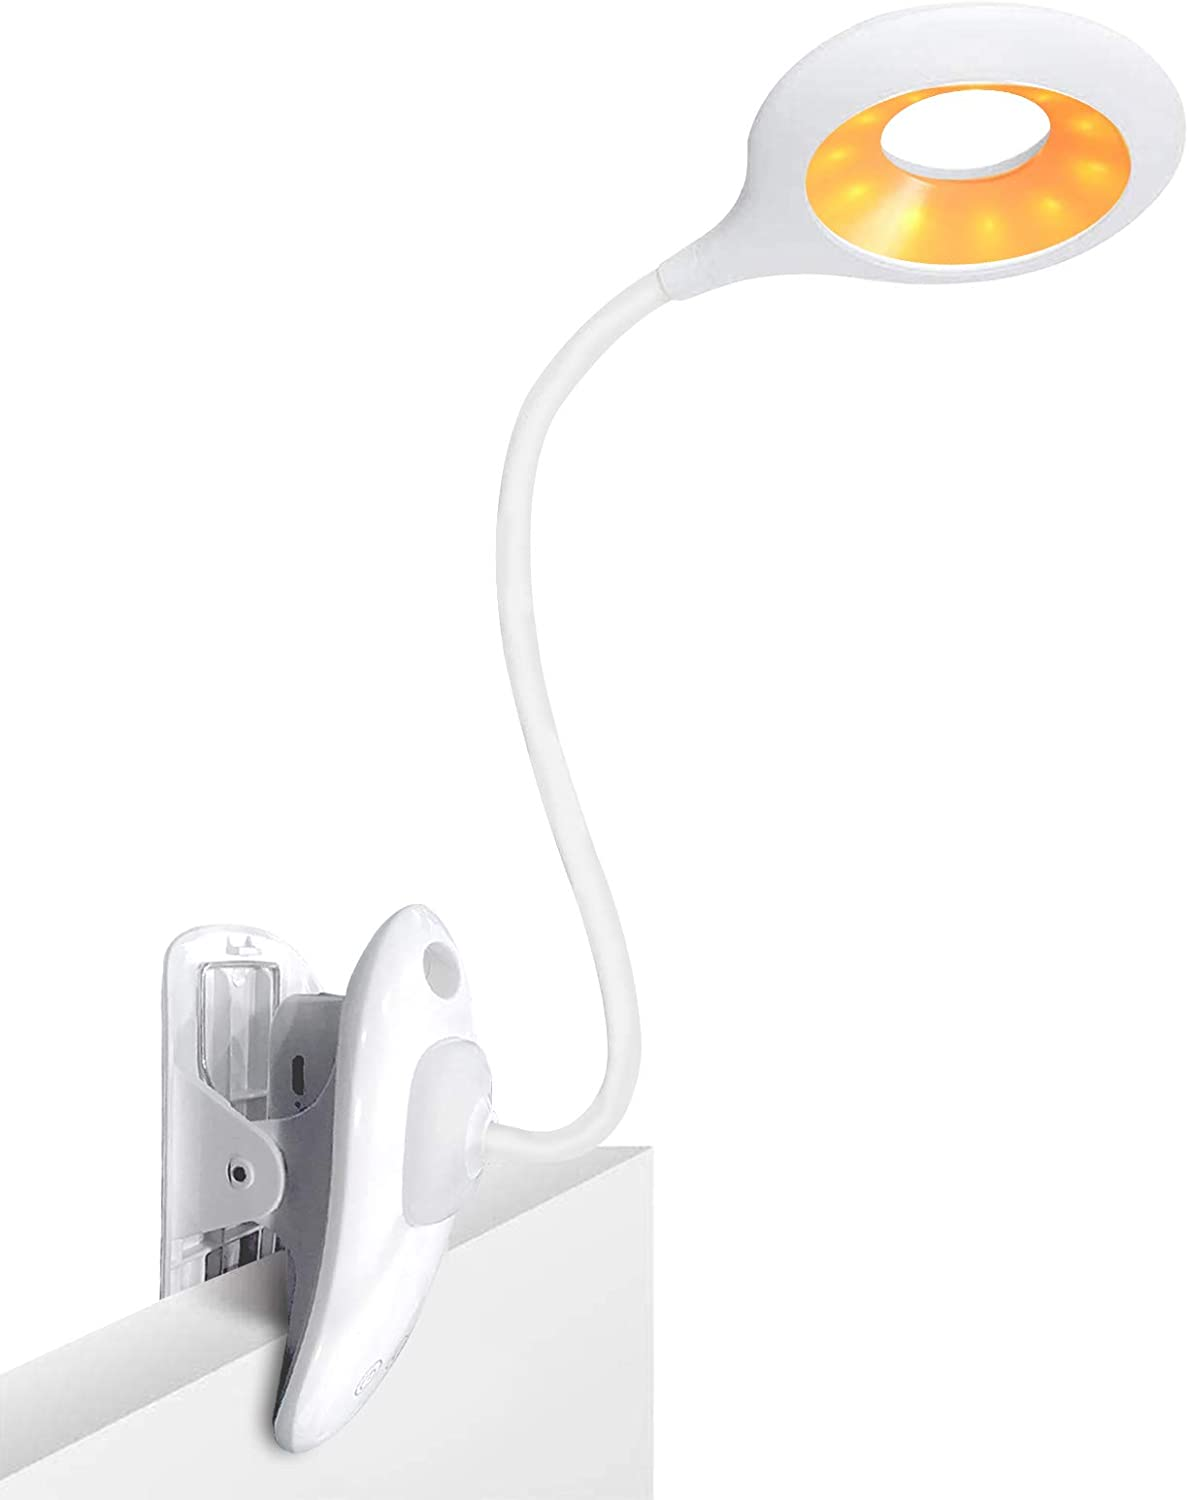 Luxvista Clip On Reading Light, USB Rechargeable 26 LEDs Eye-Care Amber Book Light 3 Levels x 3 Brightness Clip On Light Touch Control Clip Desk Lamp, Flexible 360° Clip Light for Home Bed headboard